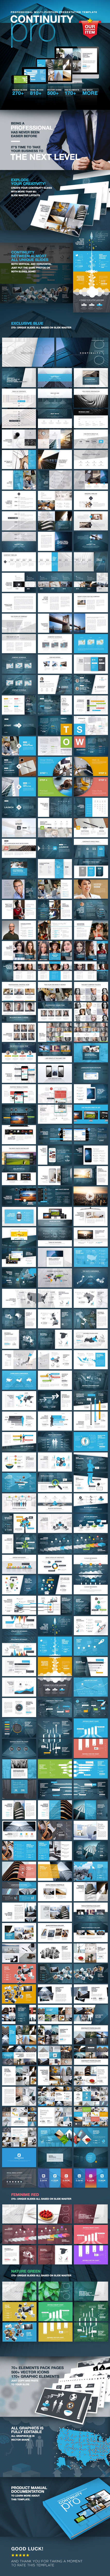 Continuity PRO PowerPoint - PowerPoint Templates Presentation Templates